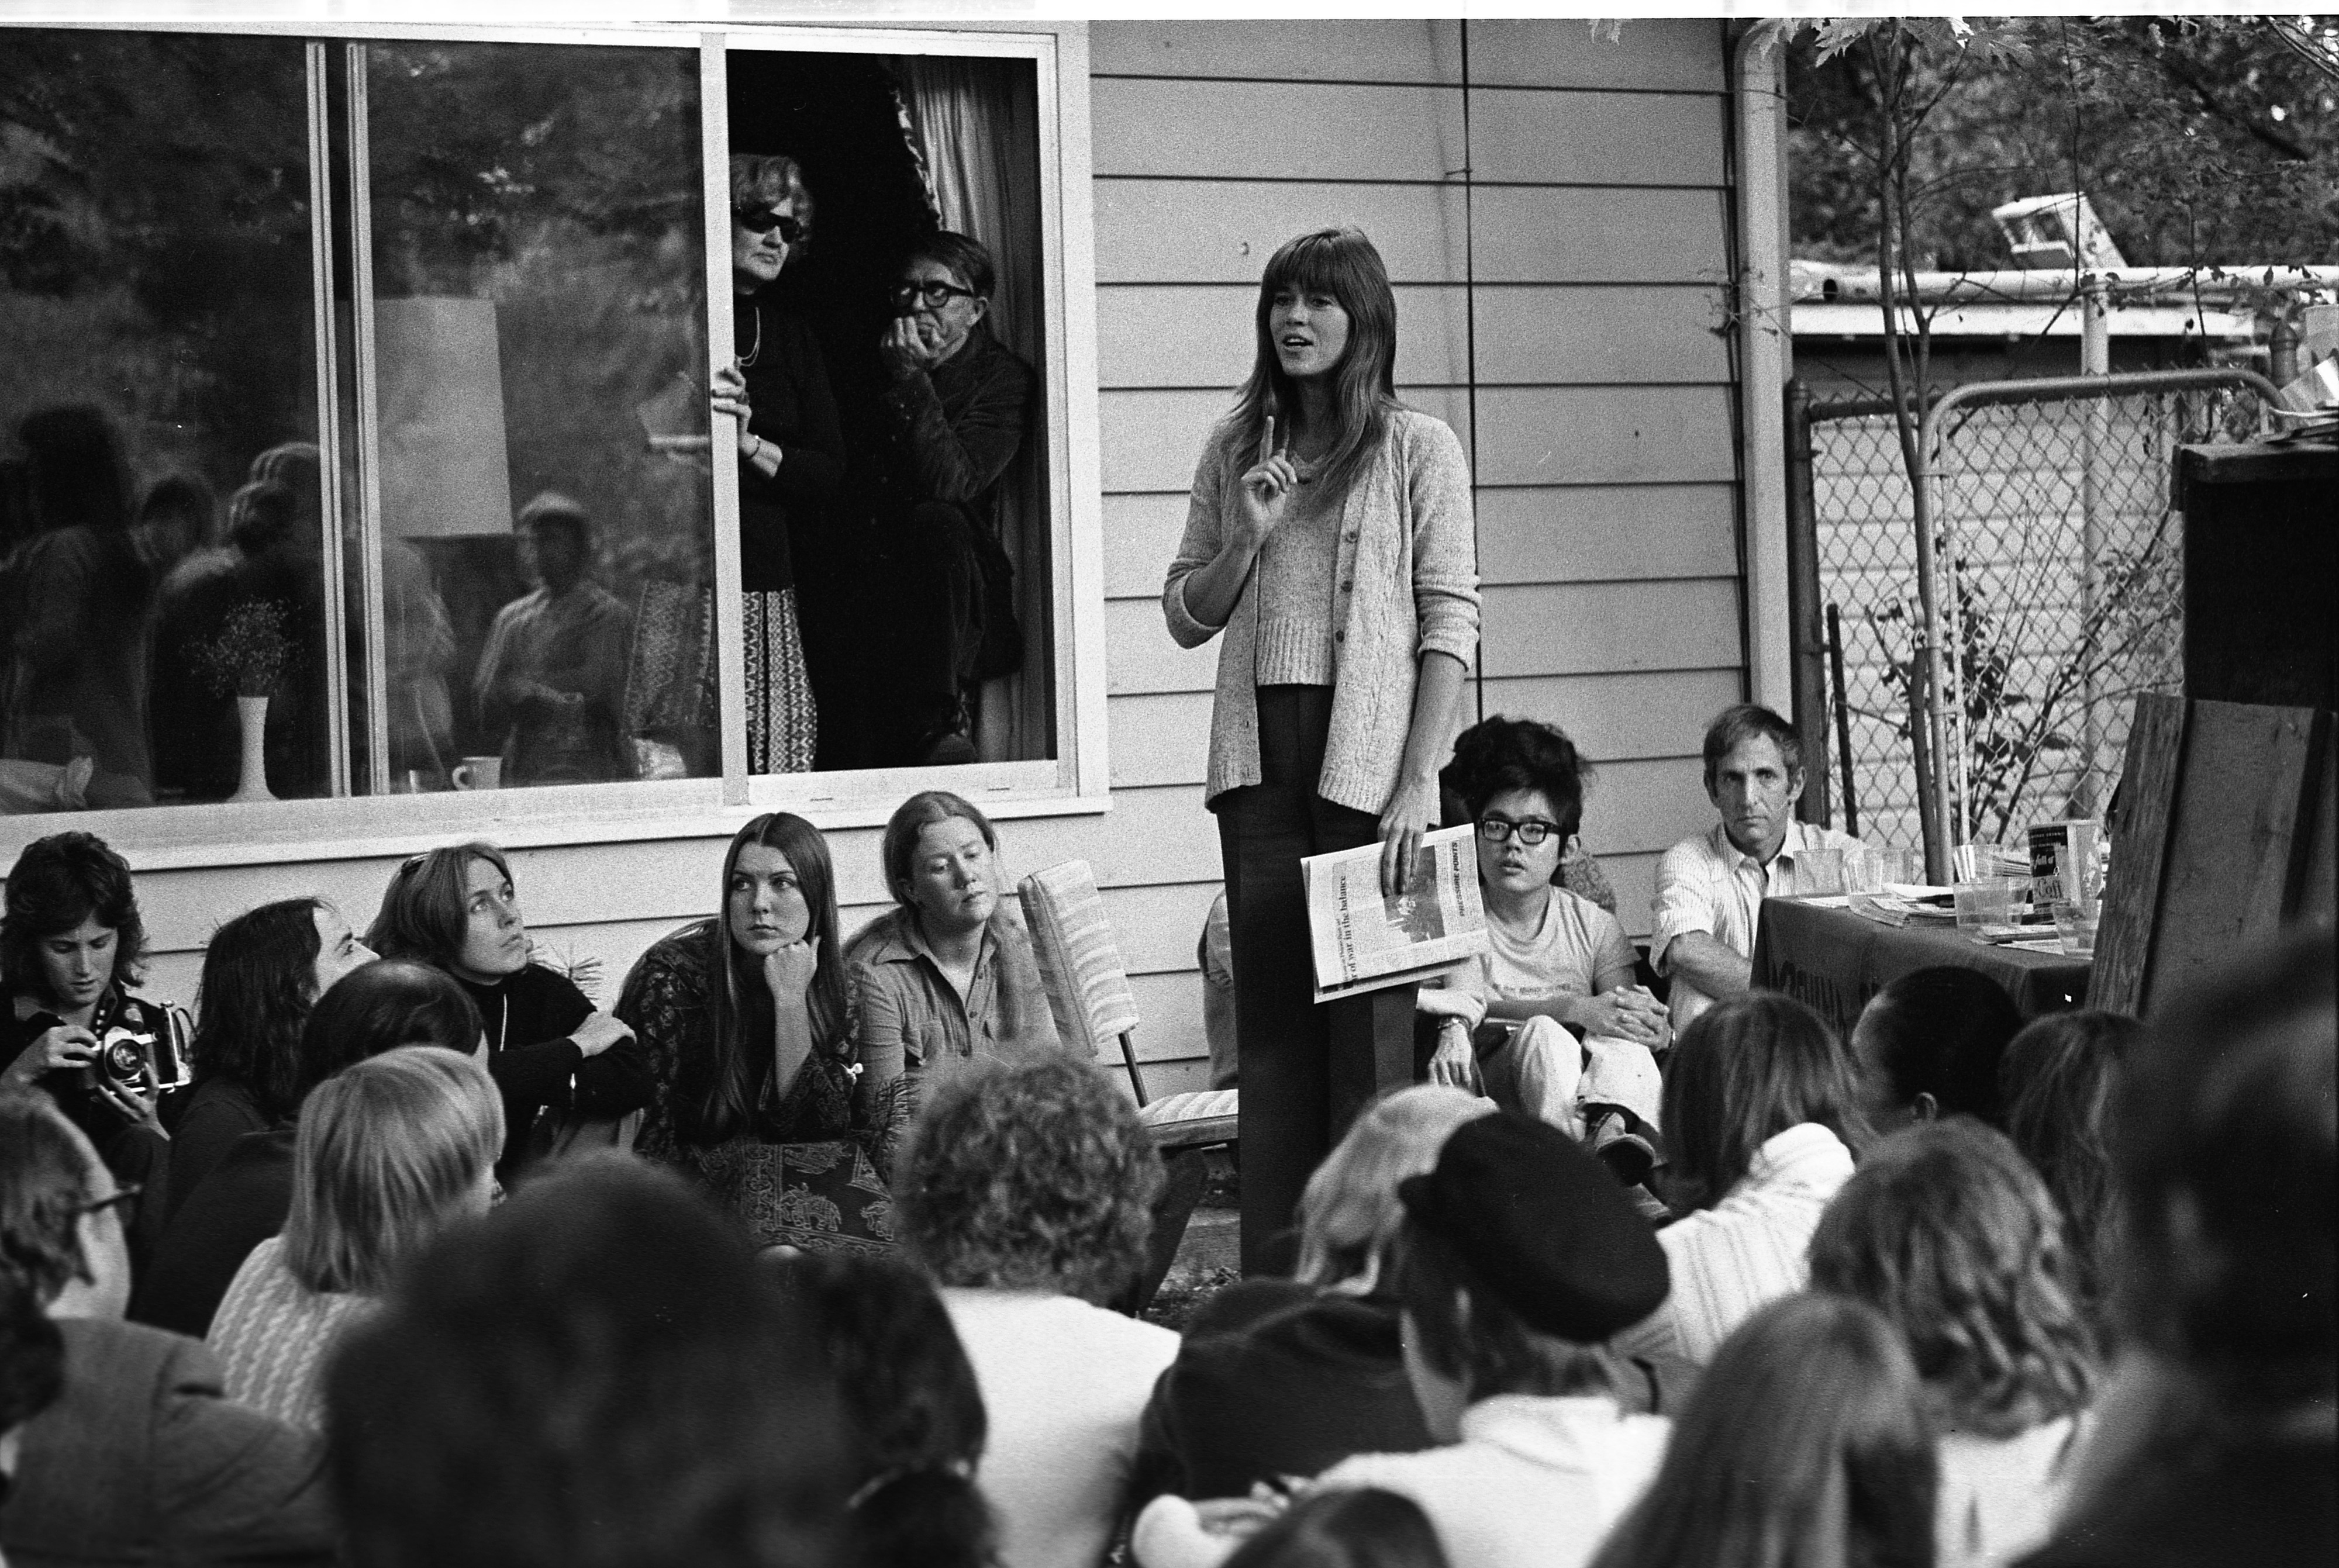 Jane Fonda Addresses Crowd At Dr. Edward Pierce's House For Fundraiser, October 1974 image